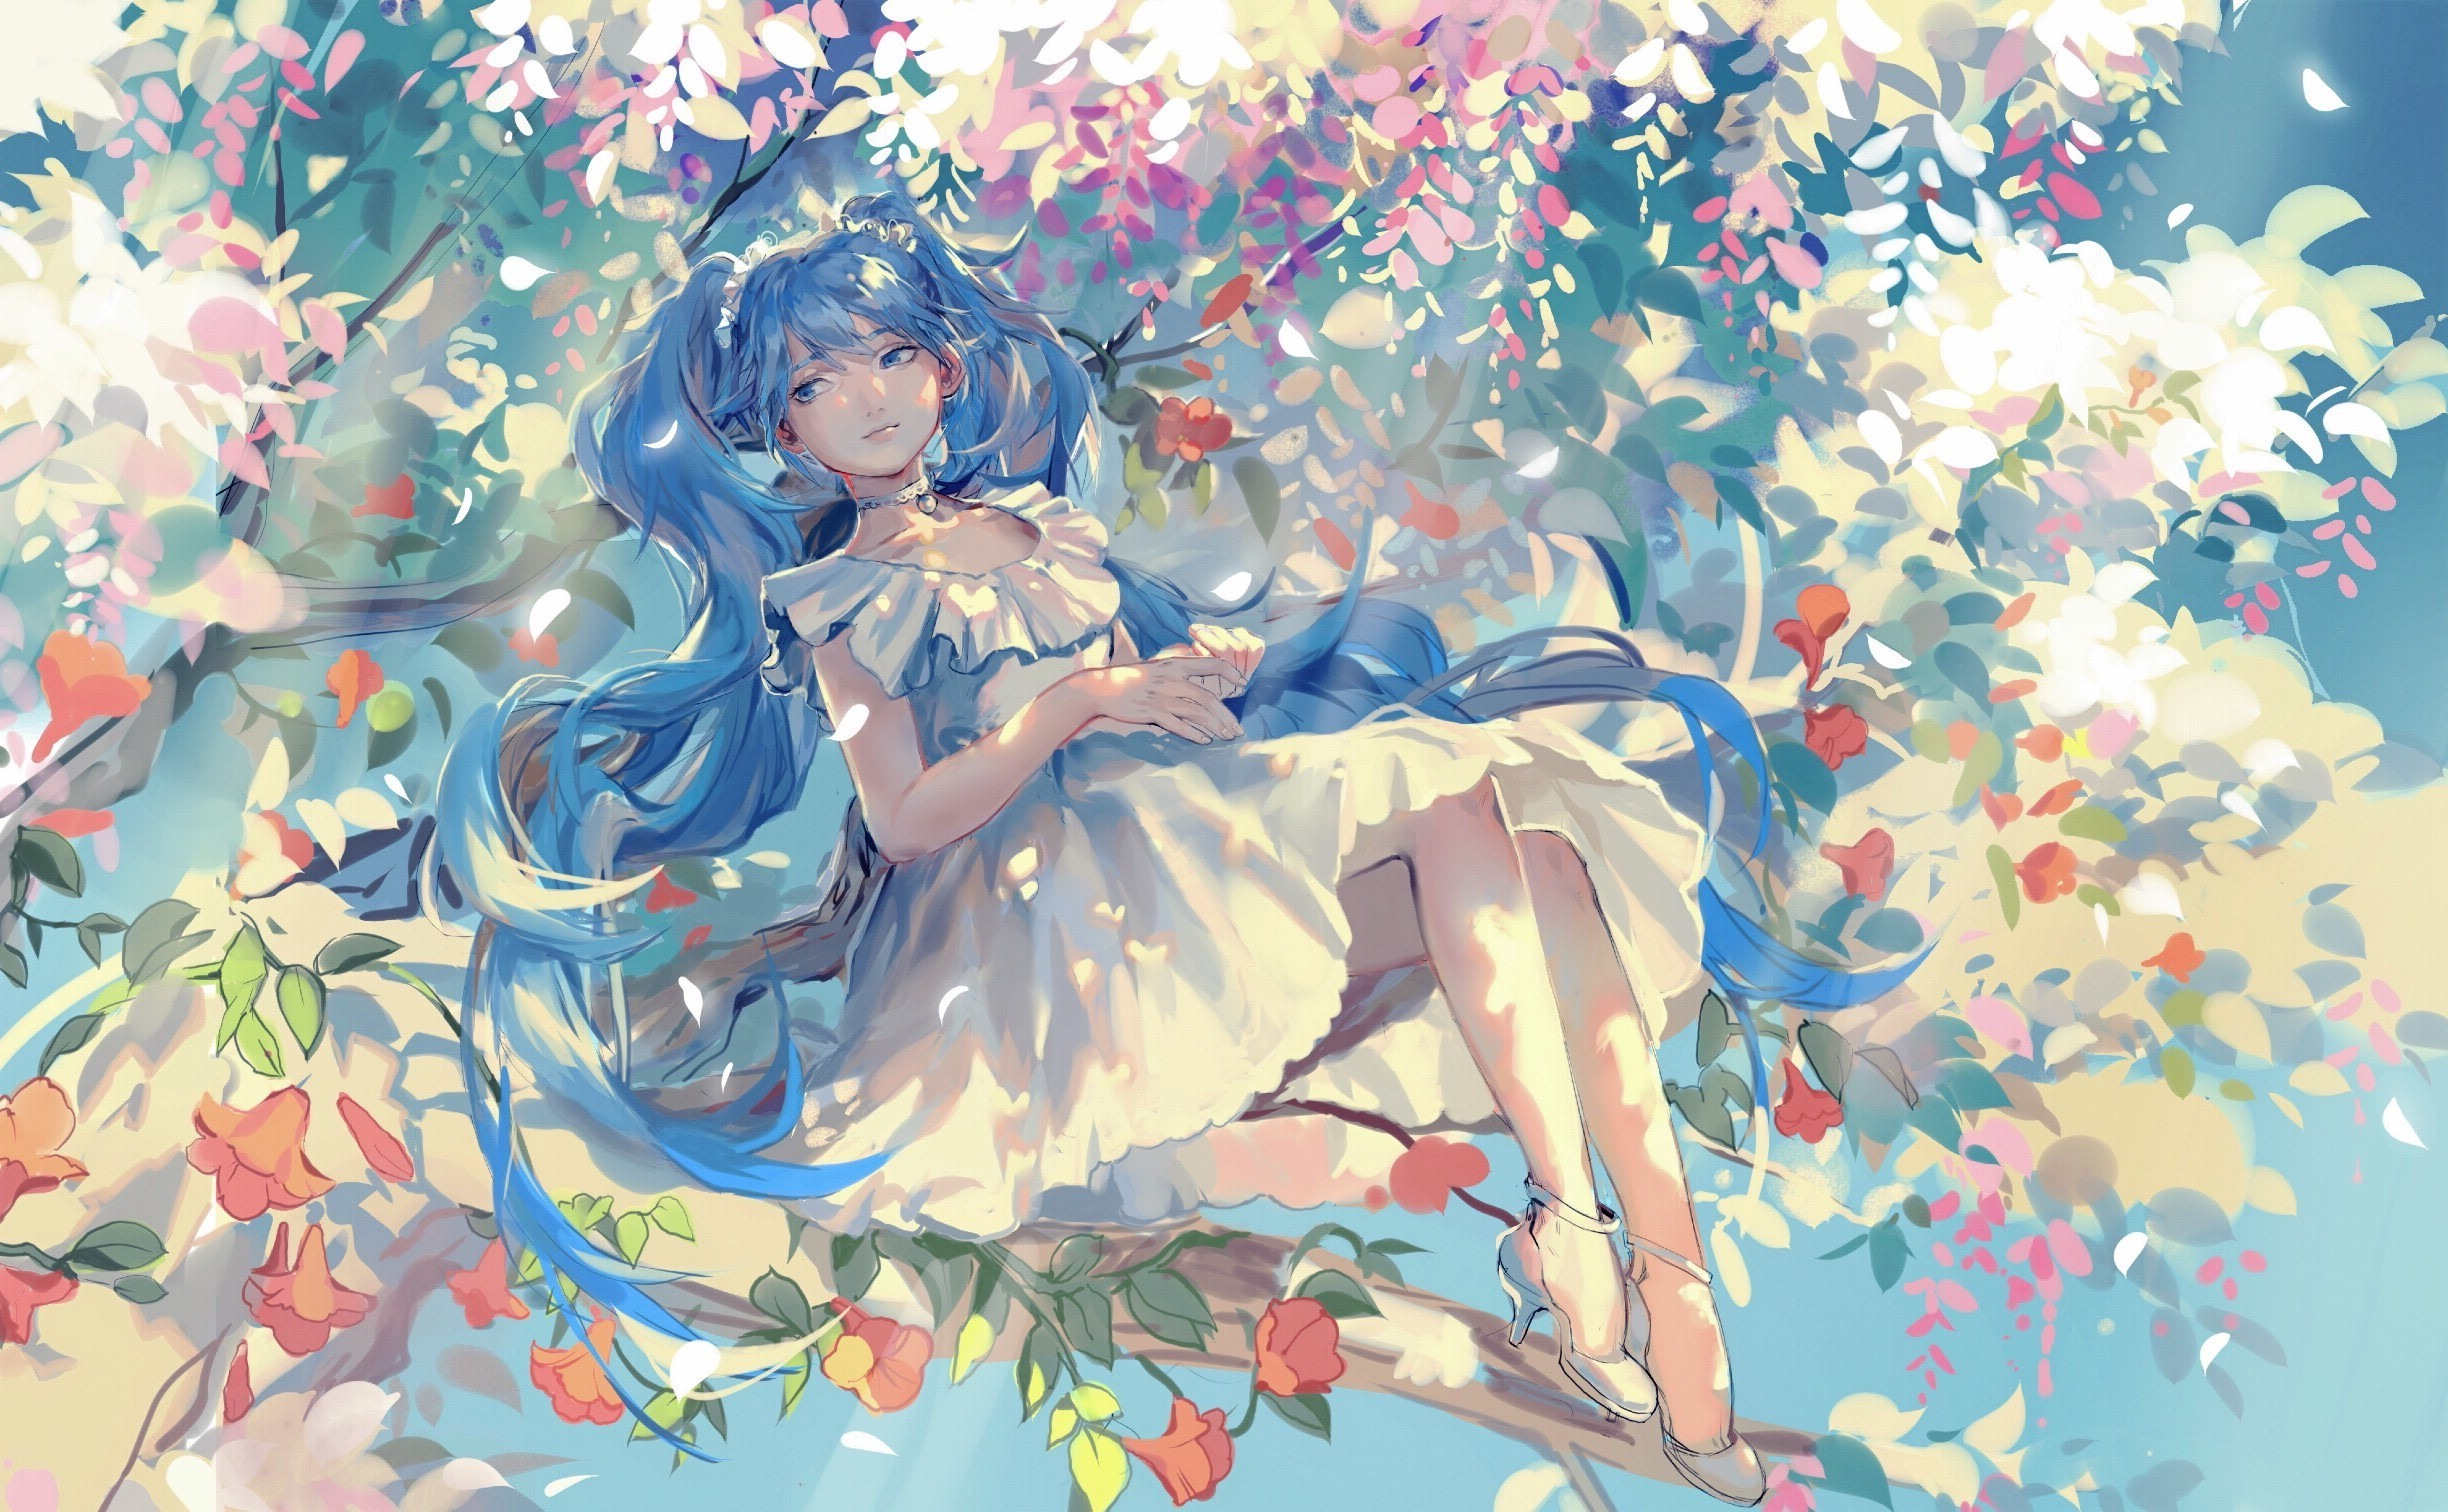 Full Hd 1080p Wallpapers Cars Heels Dress Trees Hatsune Miku Vocaloid Wallpapers Hd